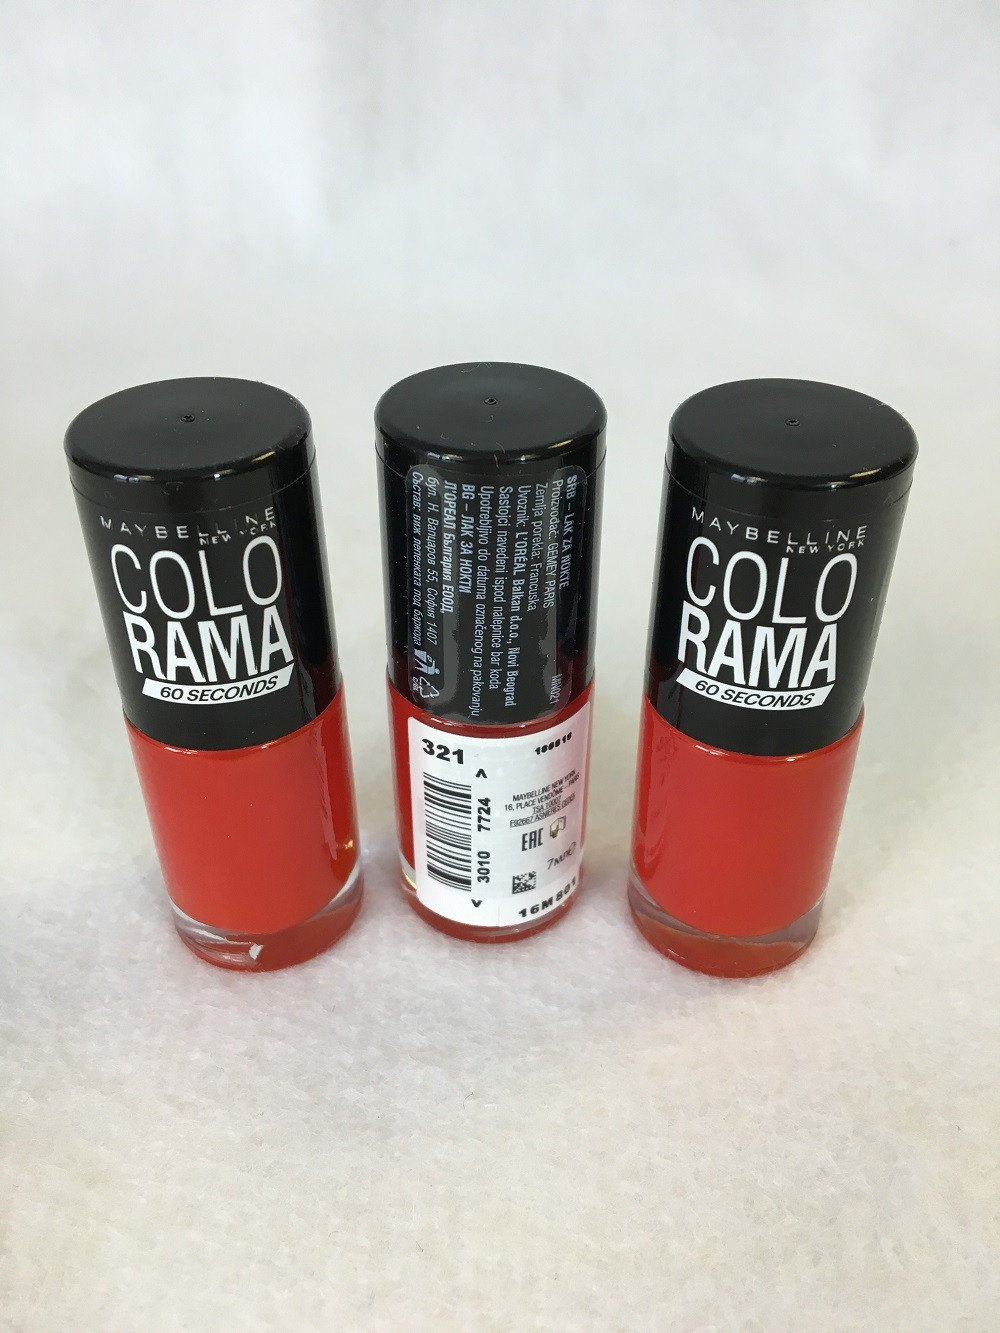 Maybelline Colorama 60 Seconds Nail Polish. 321 Tangy x 12 (£0.40 each) - Fizzy Peach Ltd